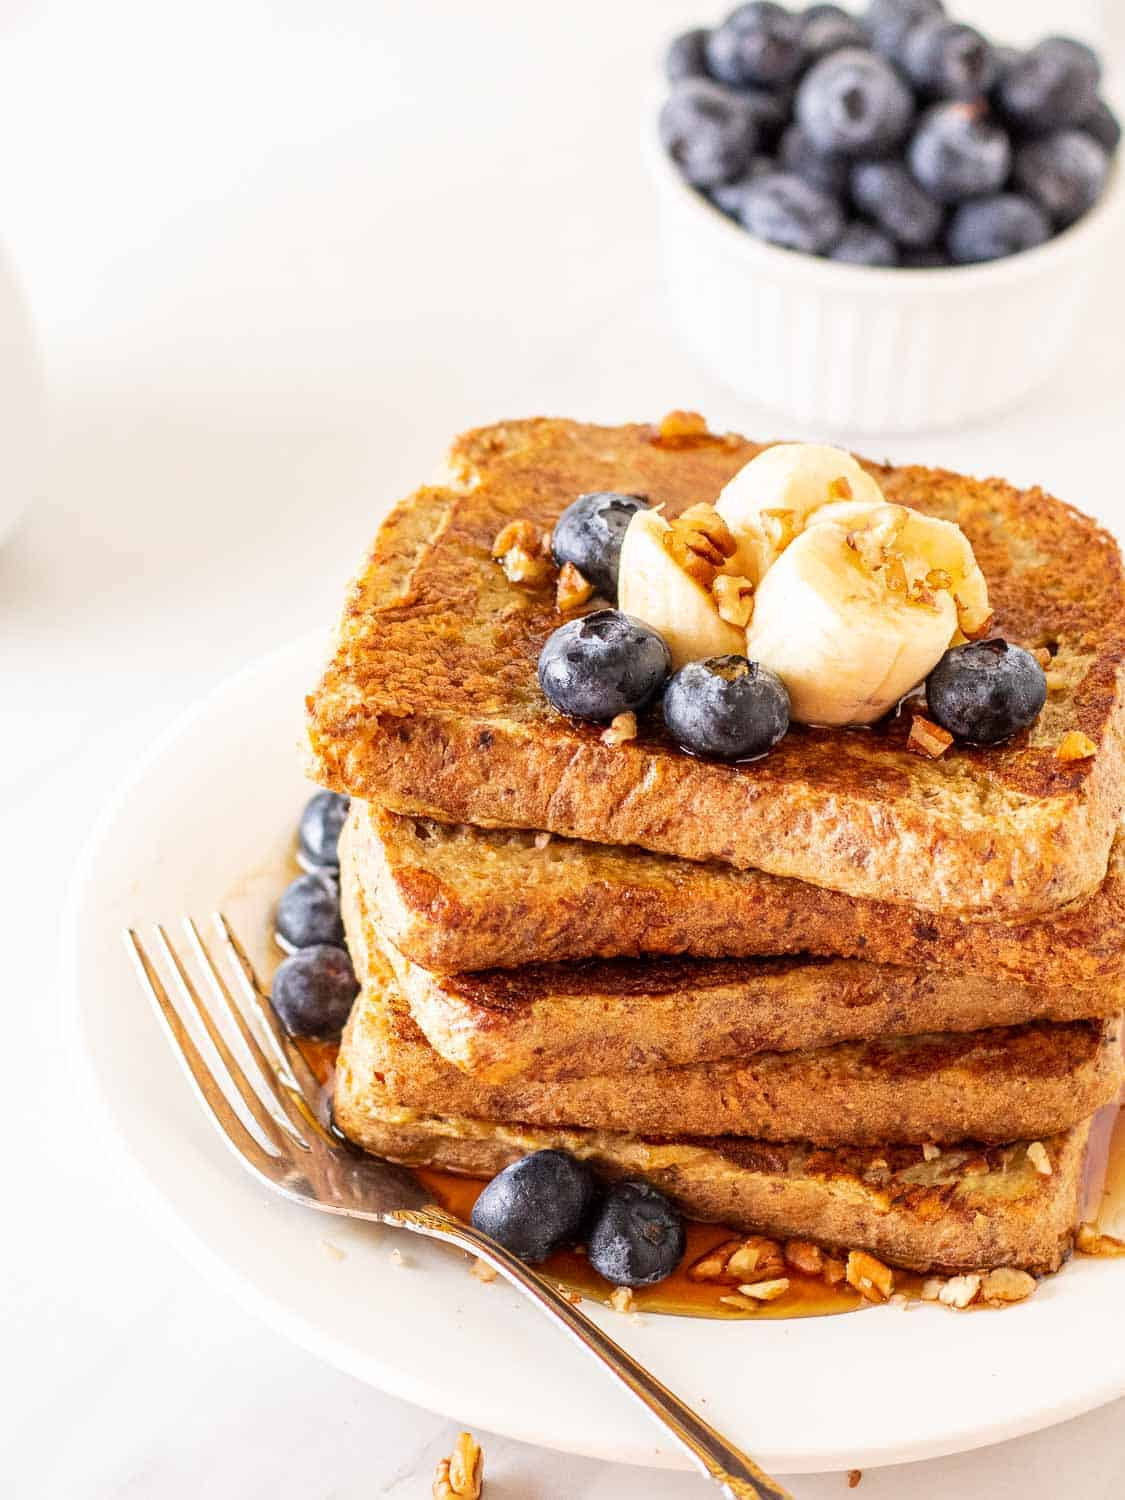 A stack of French toast topped with banana slices and blueberries on a white plate with a fork.